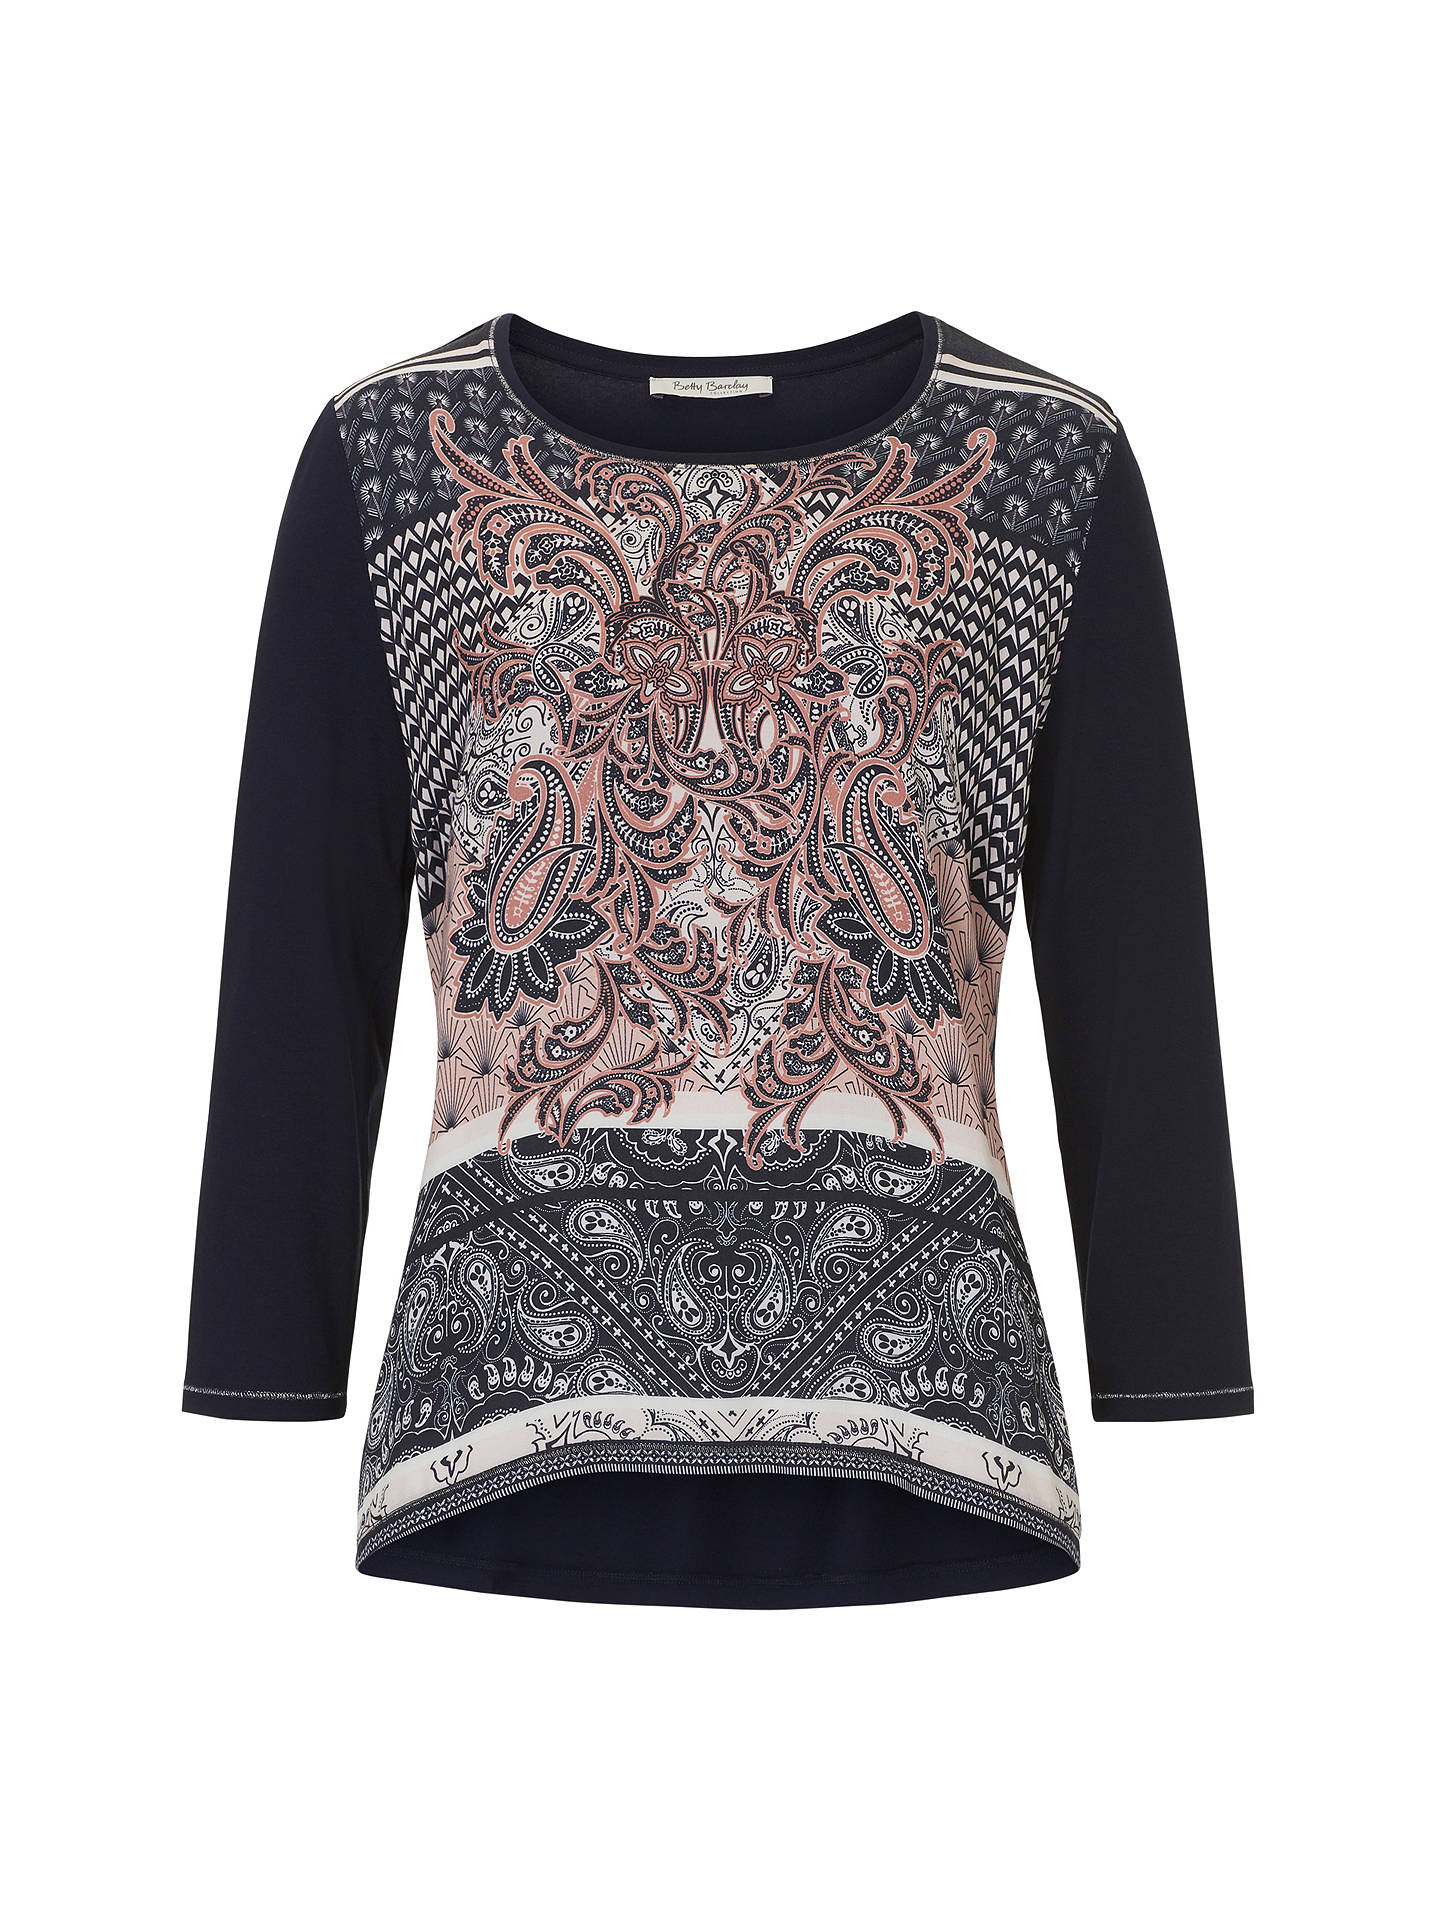 BuyBetty Barclay Paisley Print Top, Dark Blue/Rose, 12 Online at johnlewis.com